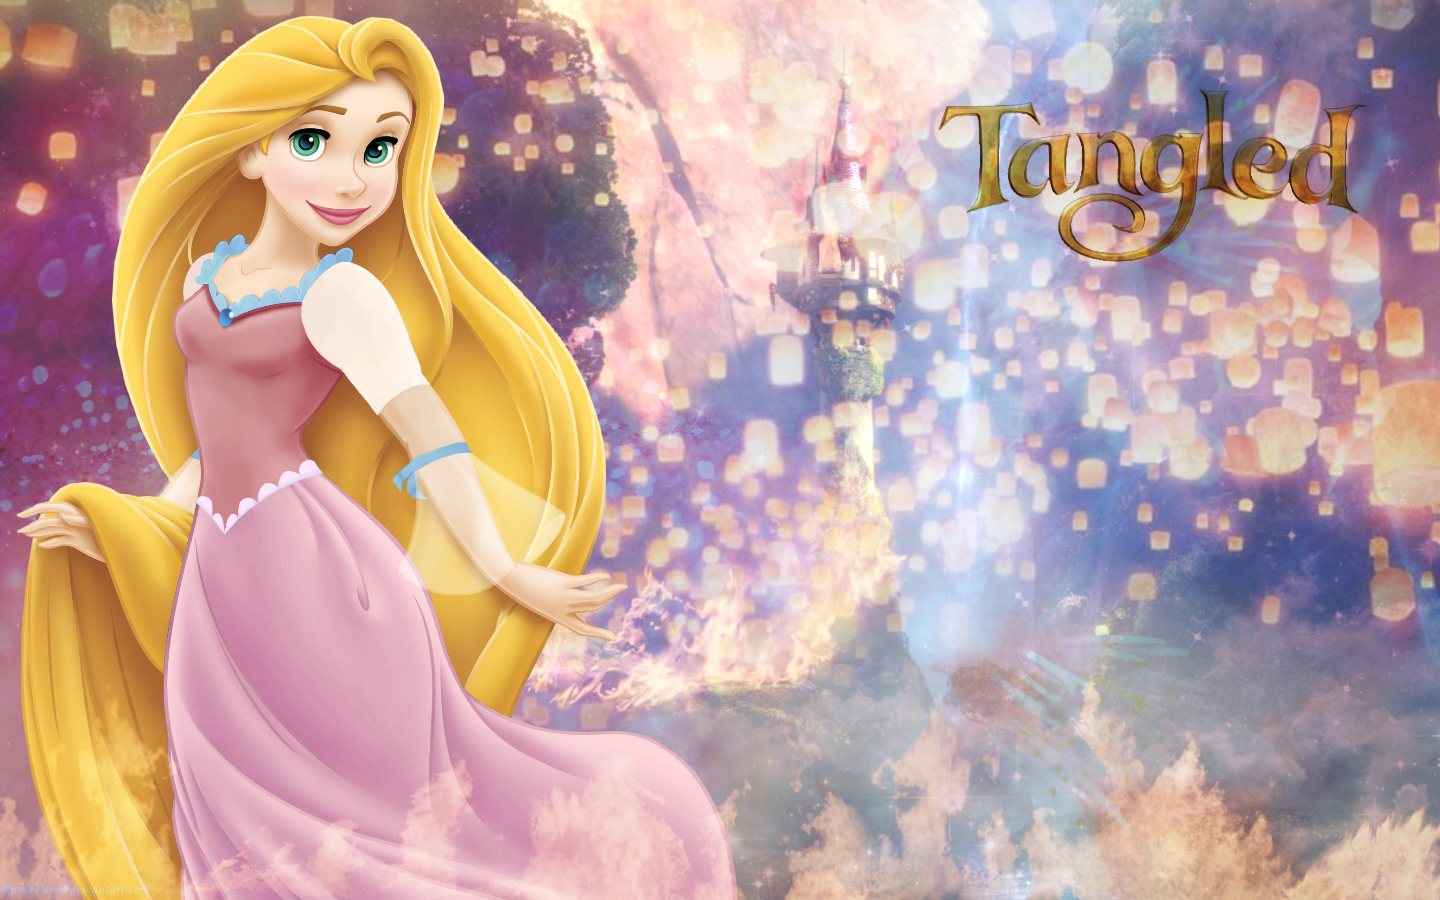 Tangled images Rapunzels Tower HD wallpaper and background photos 1440x900